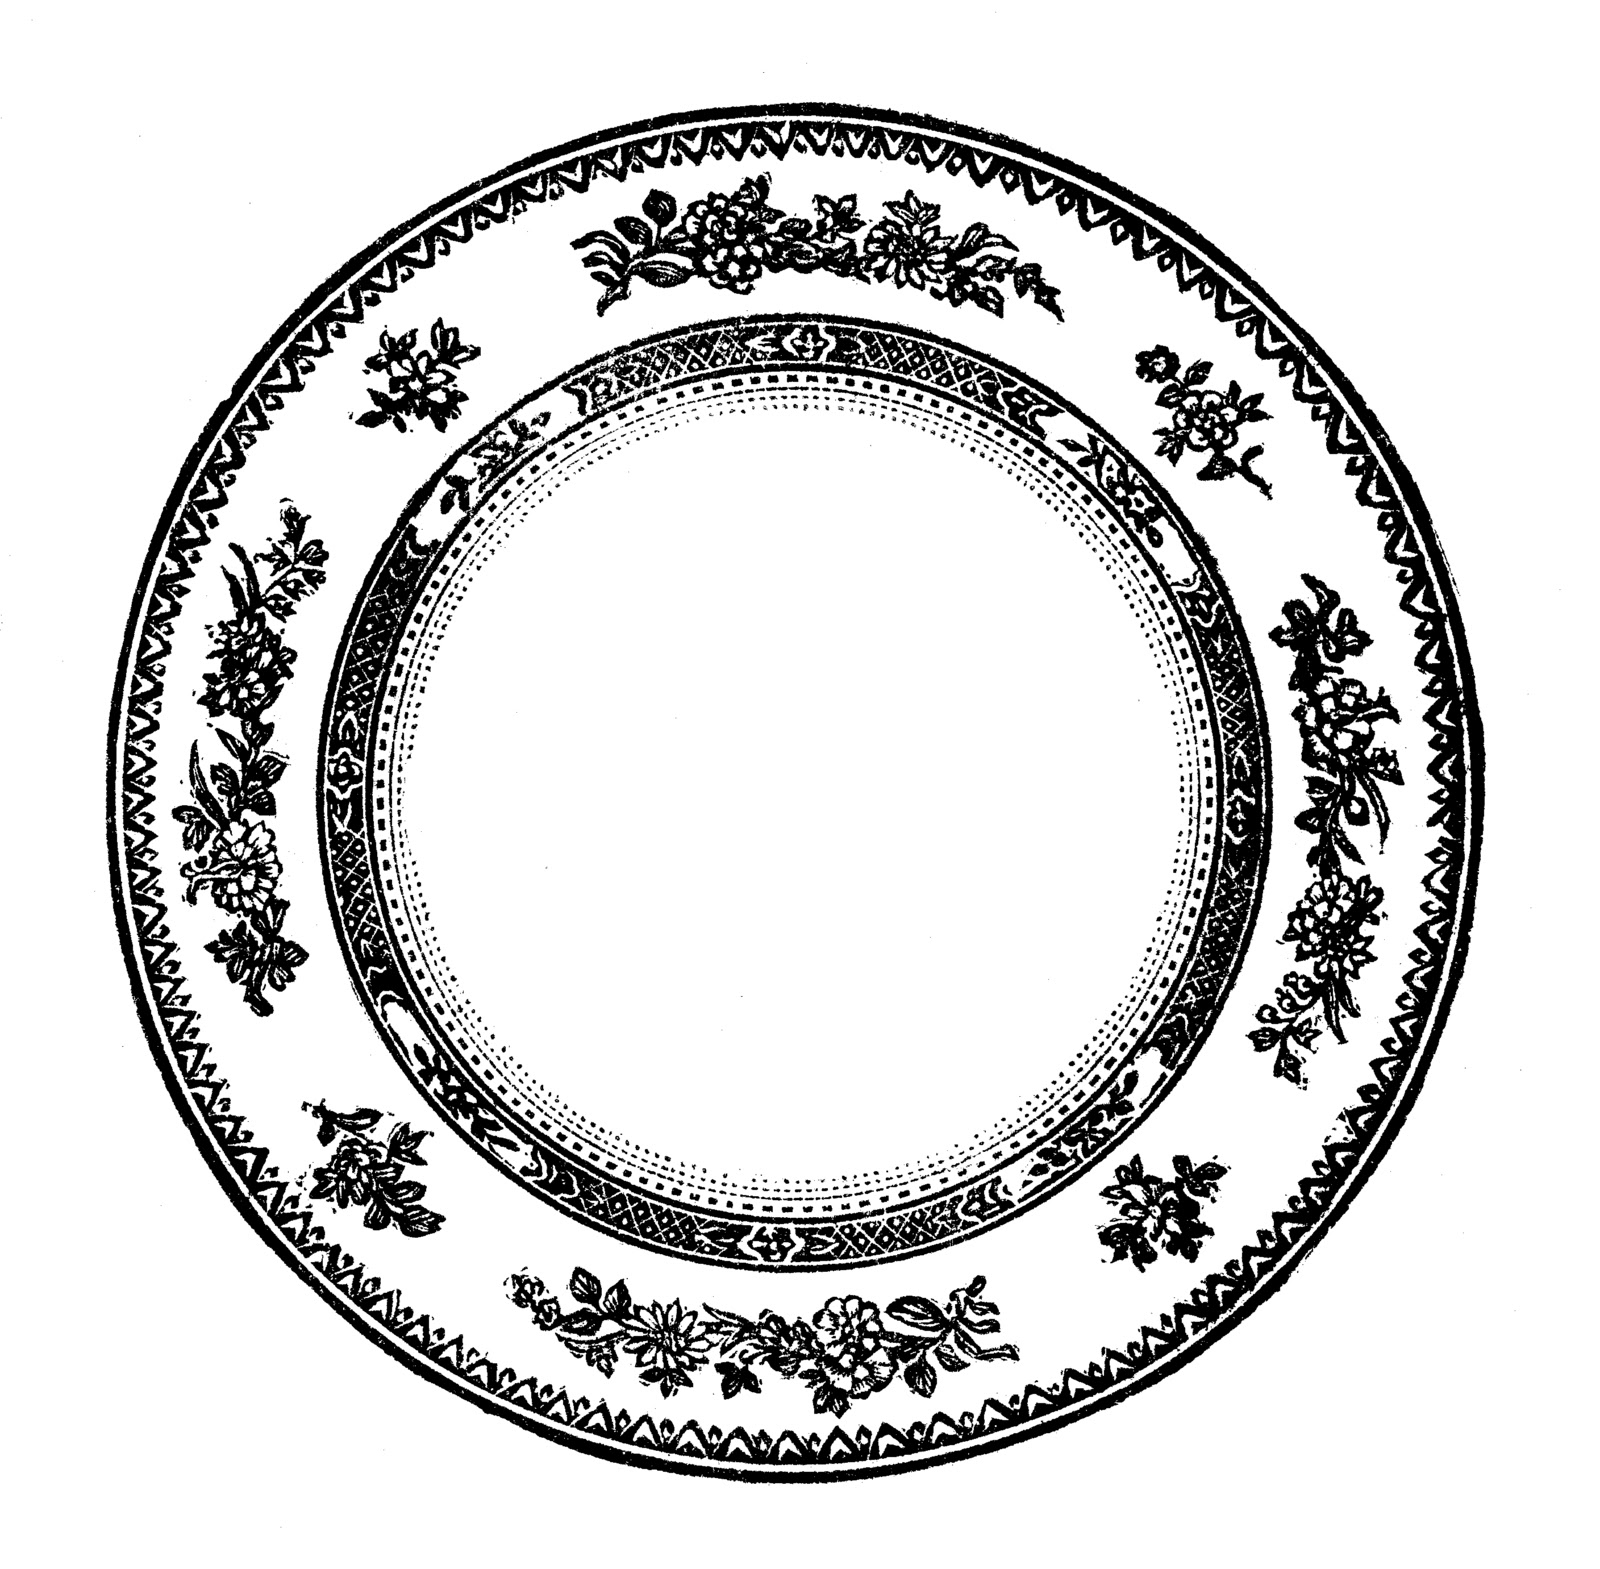 Free Vintage Plate Cliparts, Download Free Clip Art, Free.